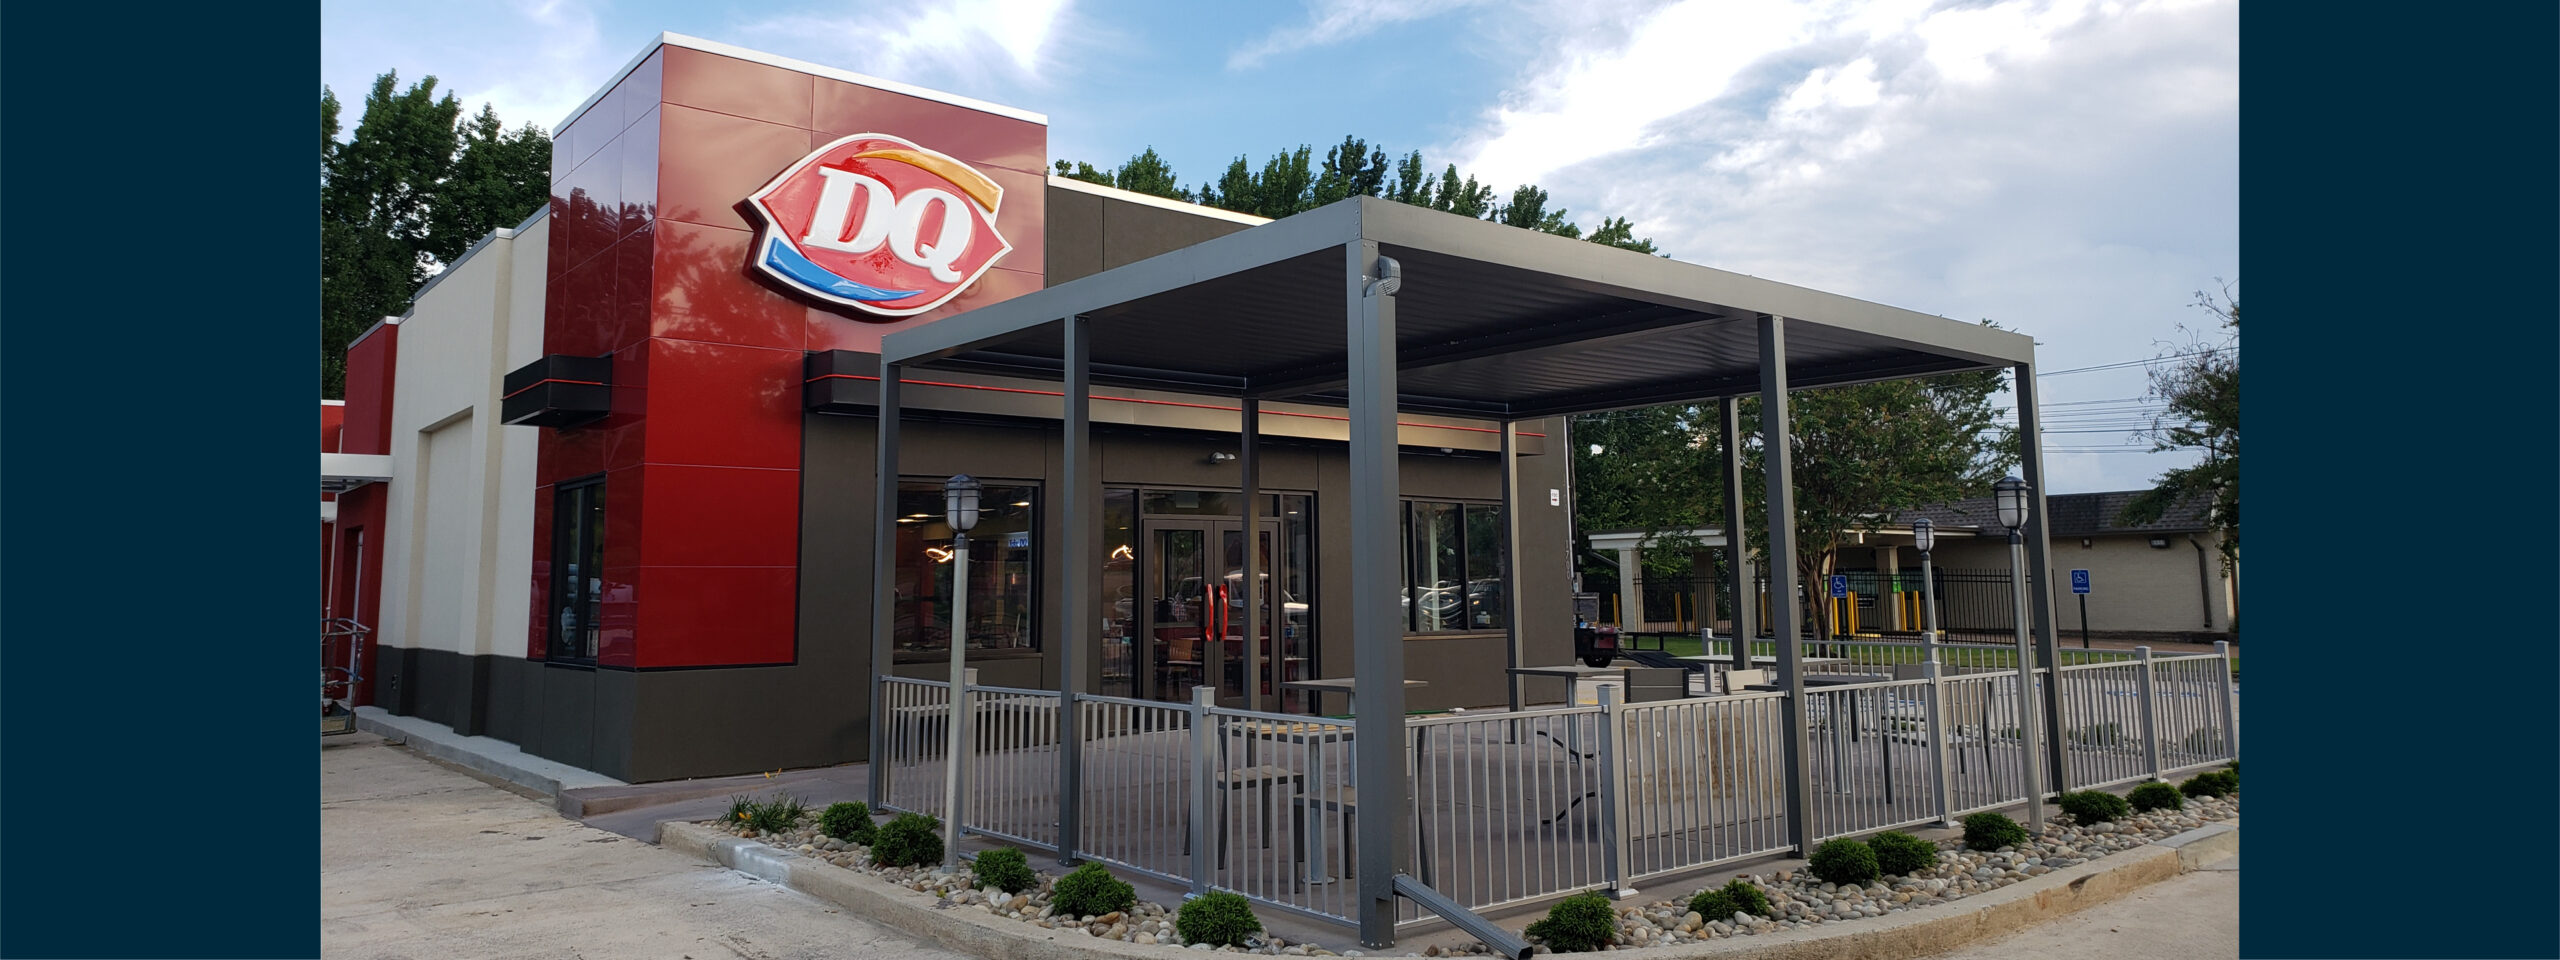 Oxford, MS Fourteen Foods DQ Restaurant